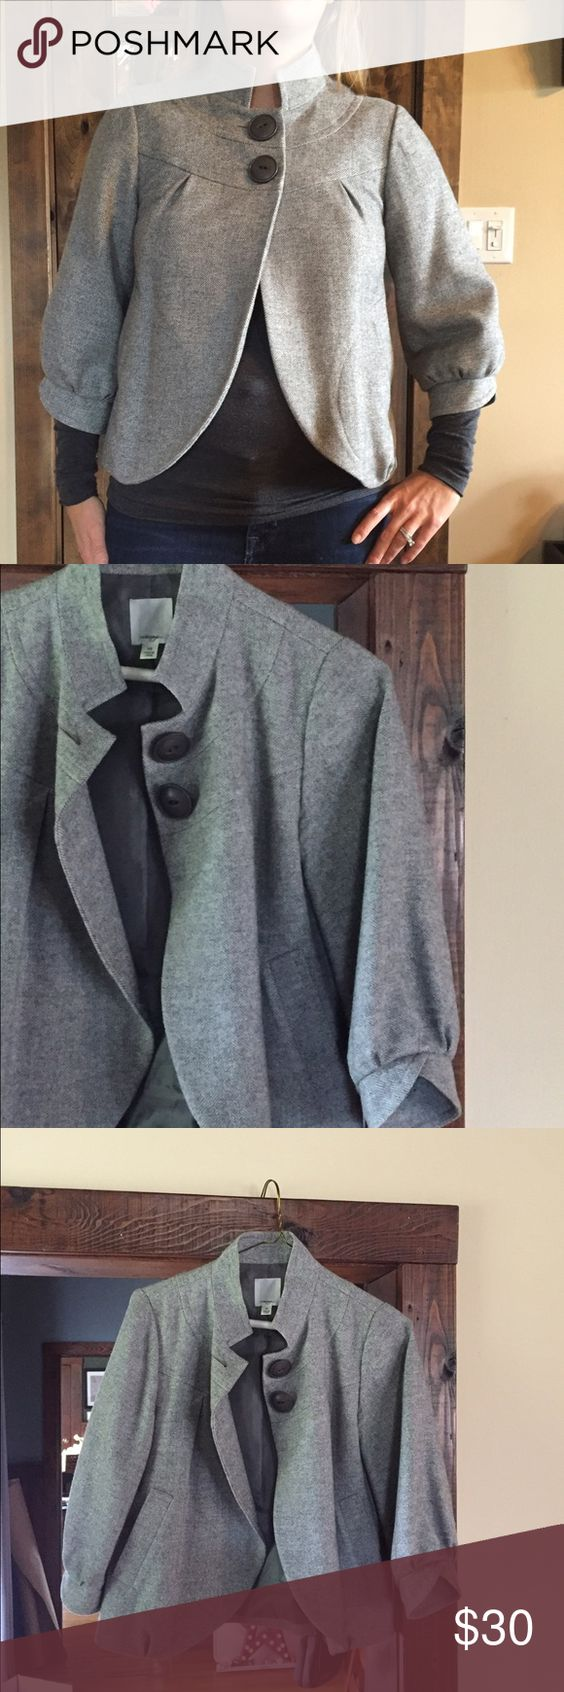 Gray jacket Cute gray jacket, simple and classy with 2 buttons. Only been worn a couple of times, like brand new! Halogen Jackets & Coats